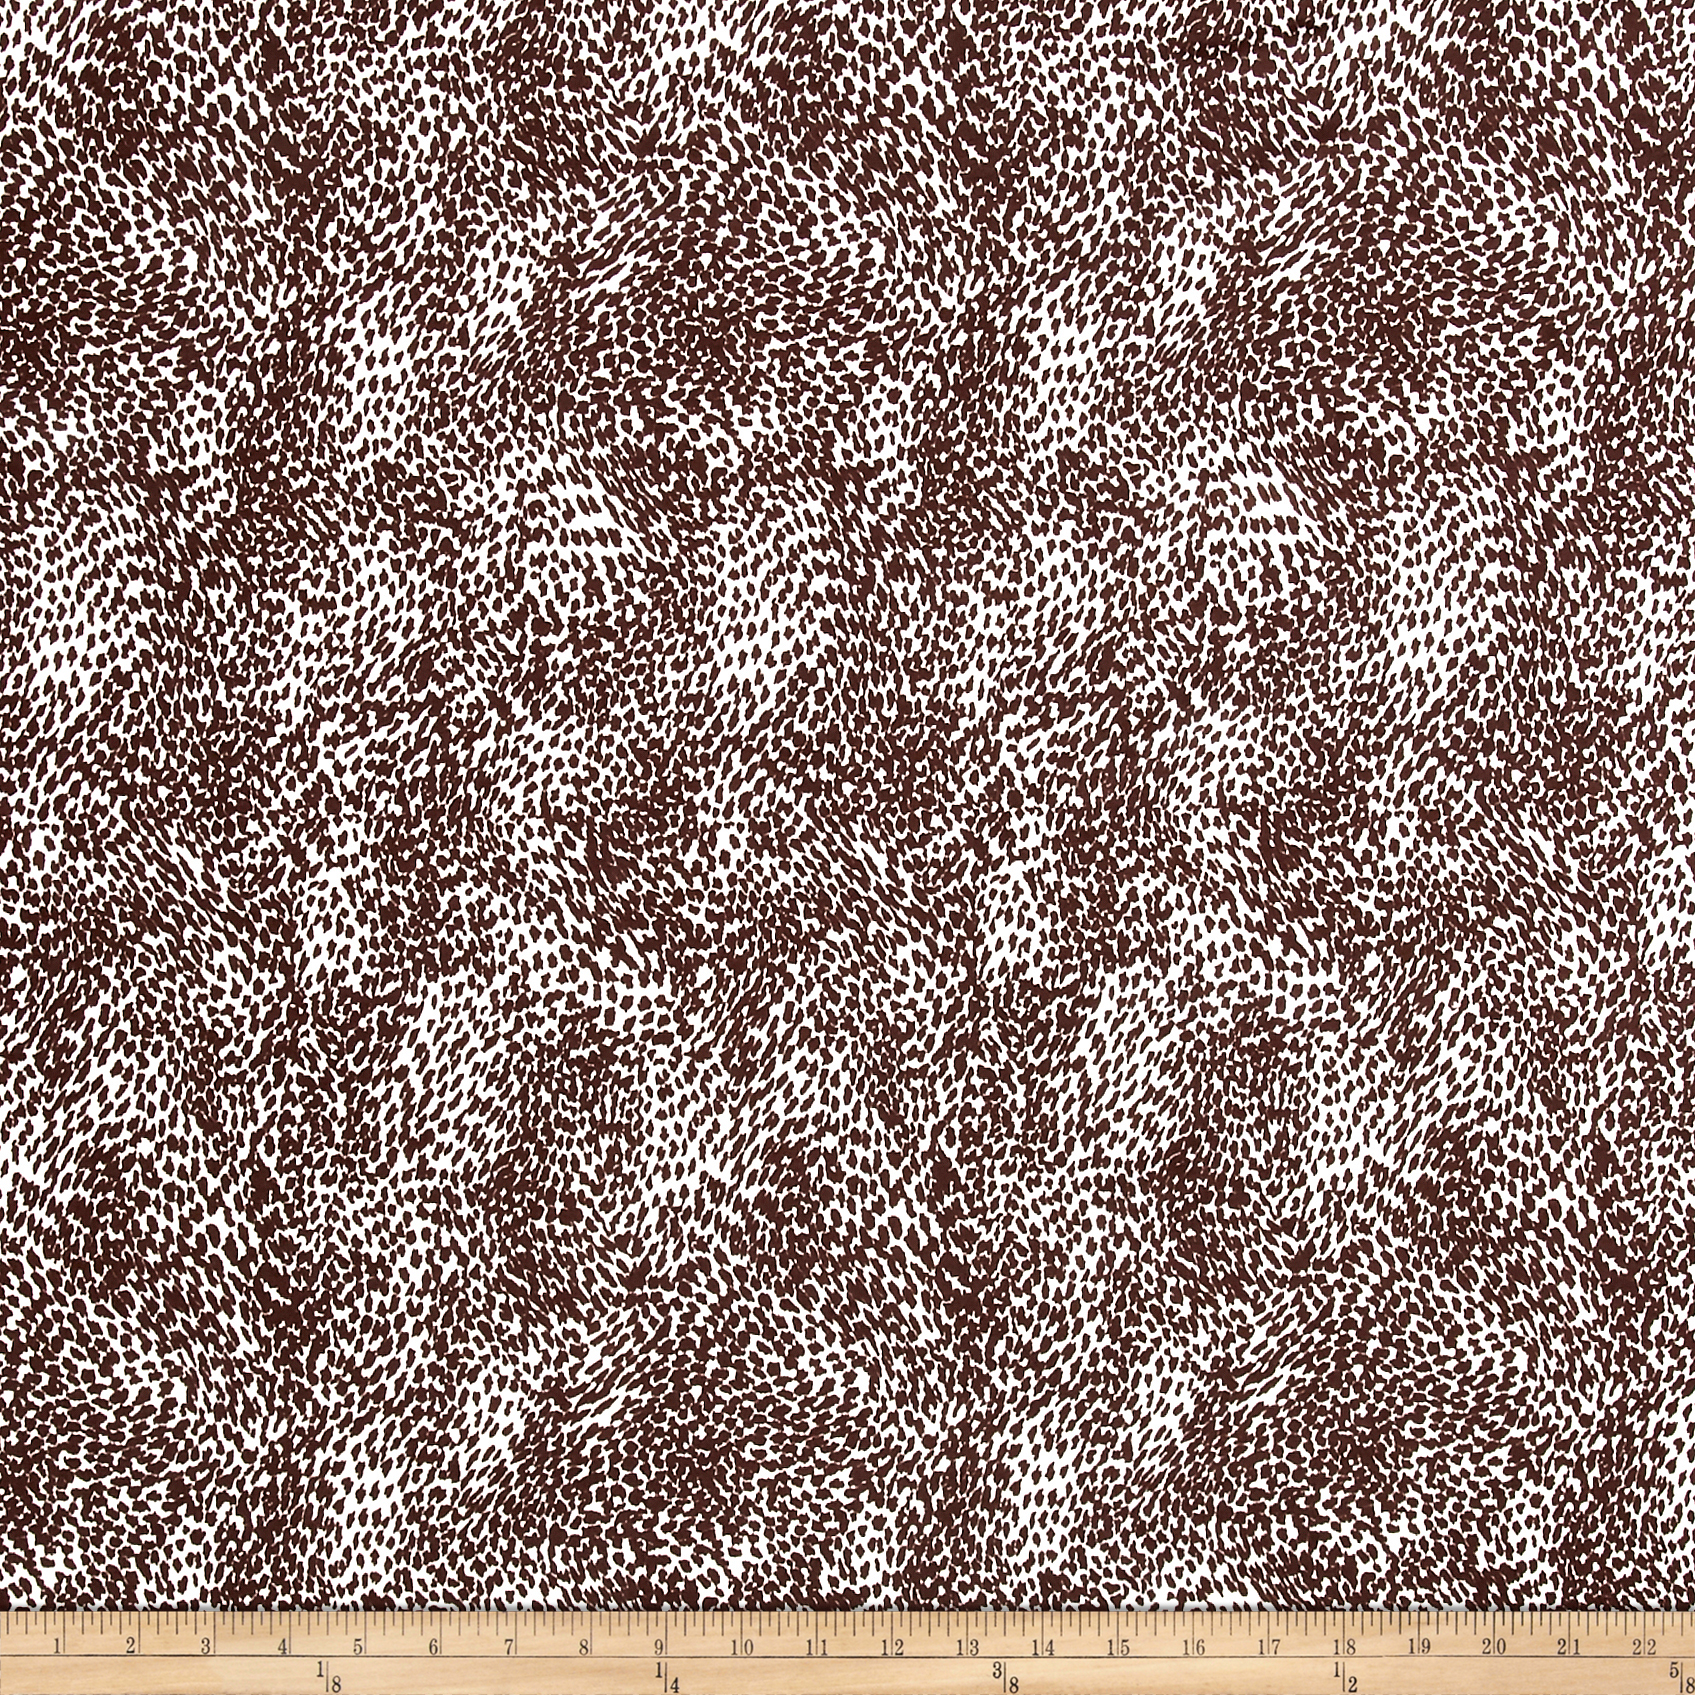 Poly Spandex ITY Knit Cheetah Brown/White Fabric by Bellagio in USA